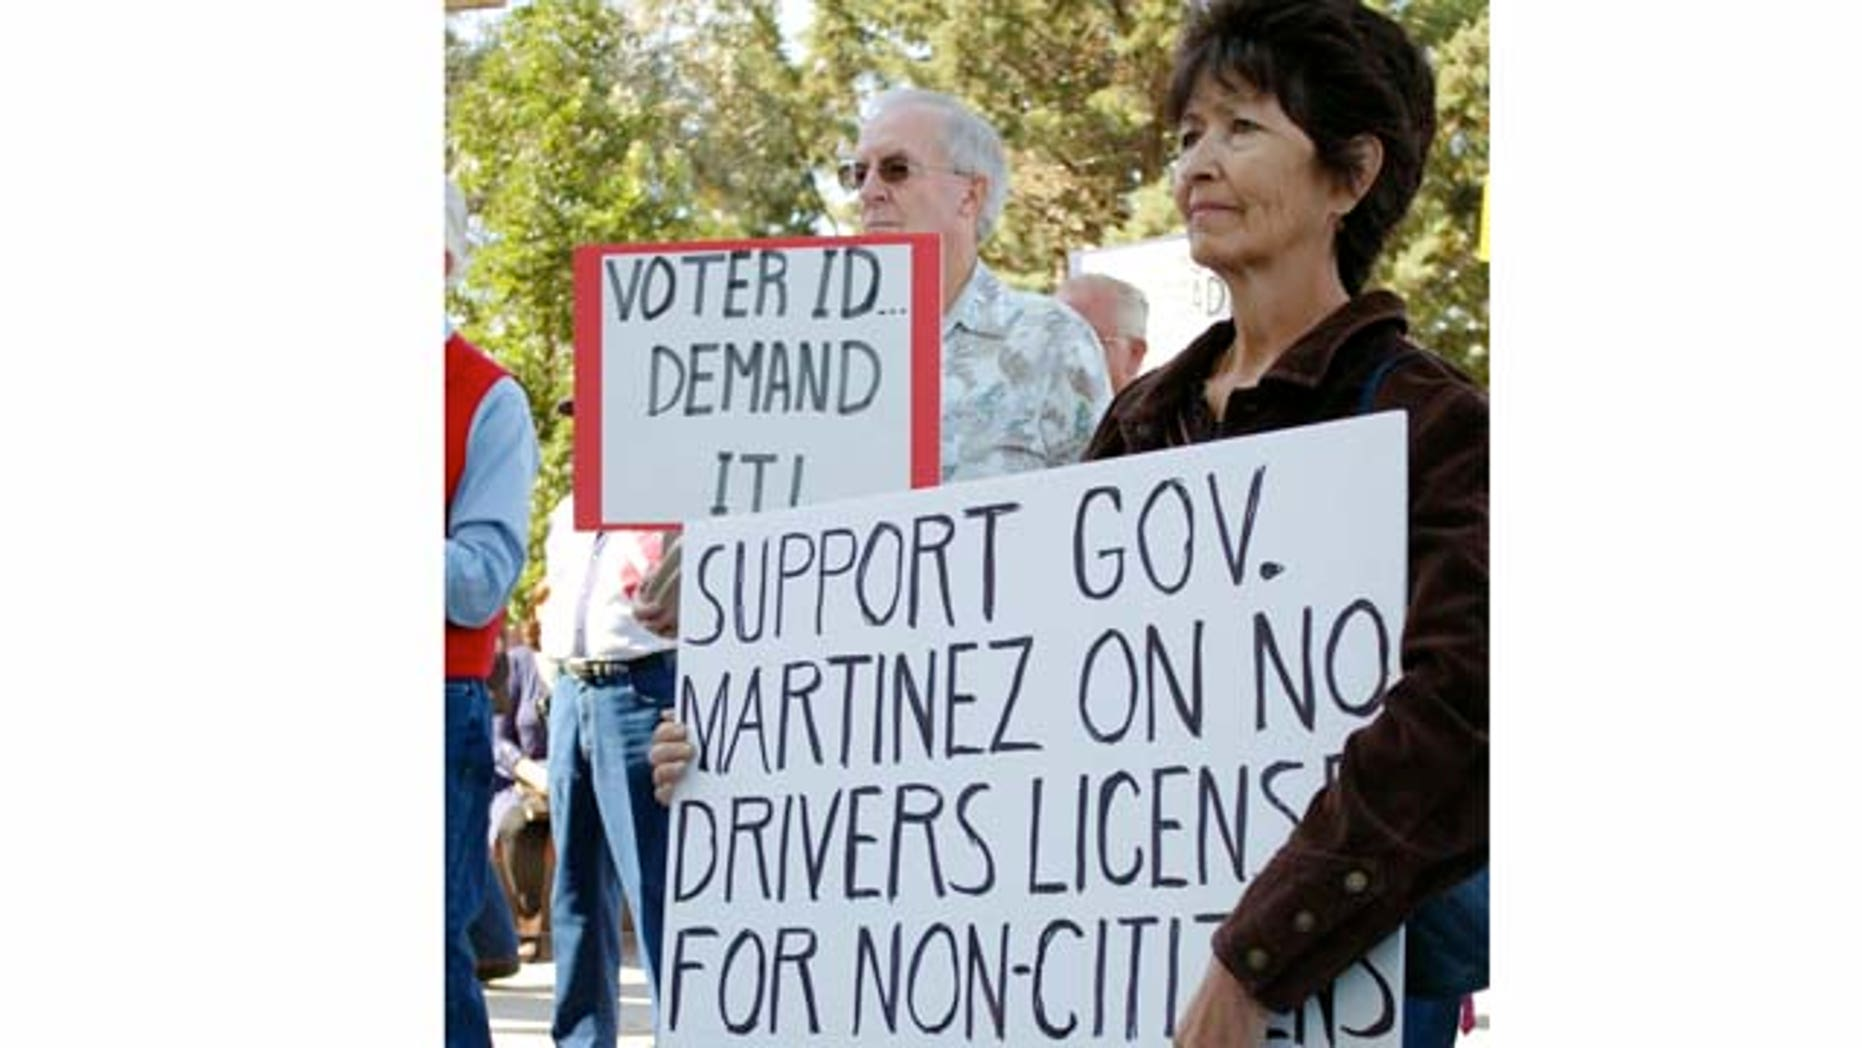 Linda Sedillos, 59, right, of Albuquerque, N.M., and other Tea Party activists held a counter-rally after immigrant advocates came to lobby state lawmakers on keeping a New Mexico law that allows undocumented immigrants to obtain driver's licenses.